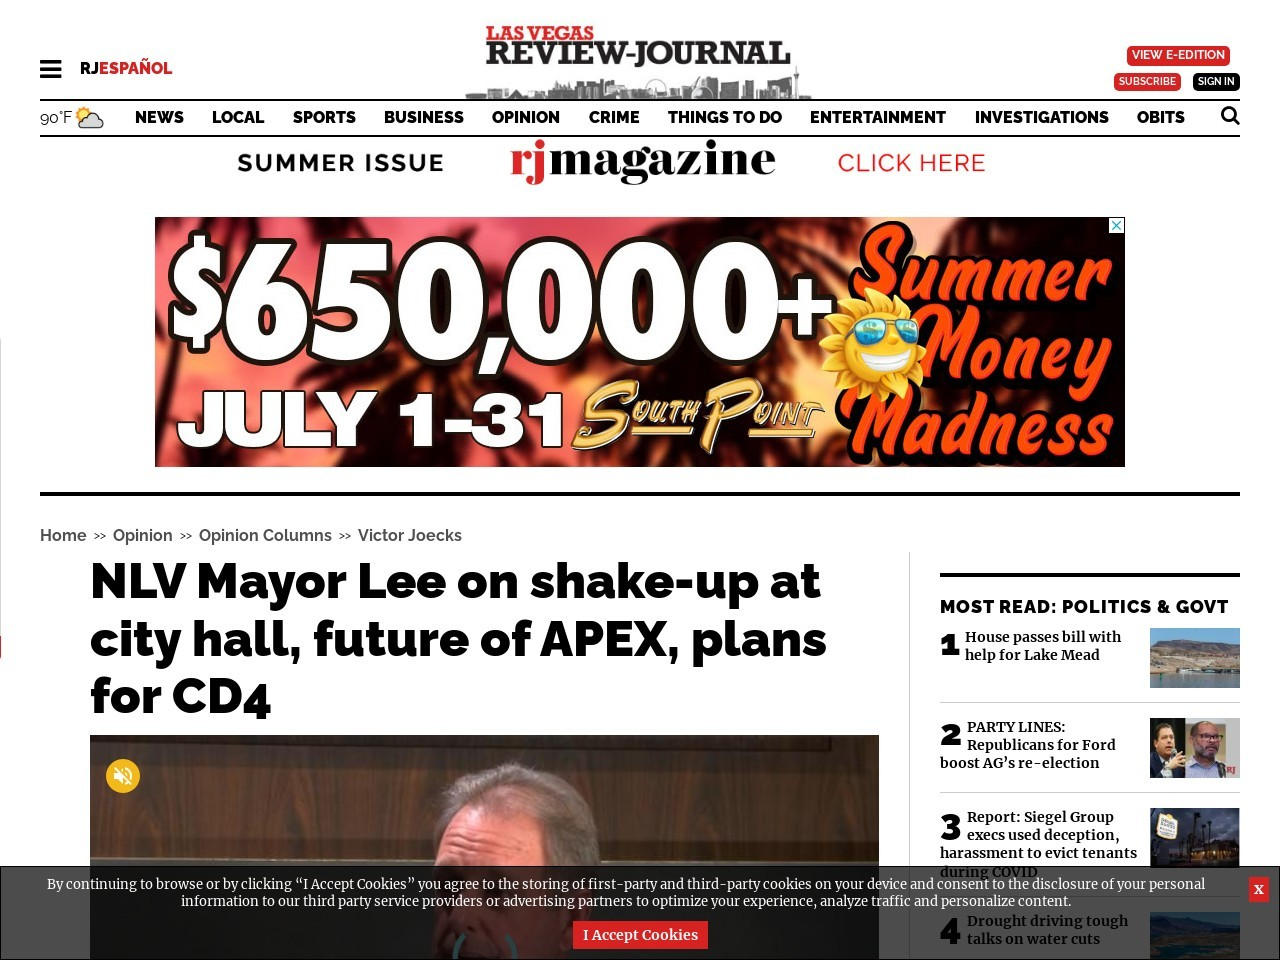 NLV Mayor Lee on shake-up at city hall, future of APEX, plans for CD4